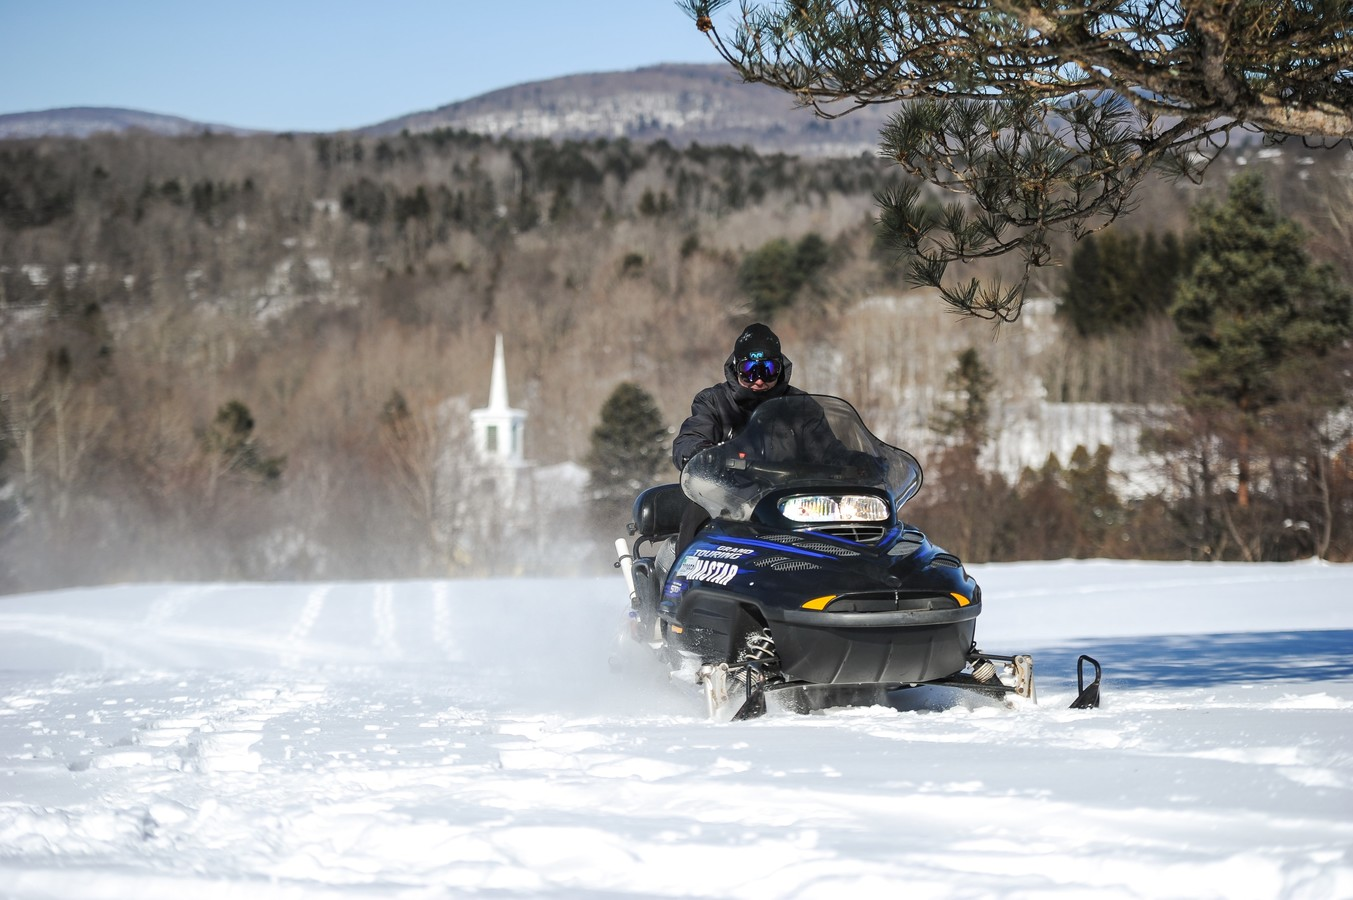 snowmobiling in the Catskills